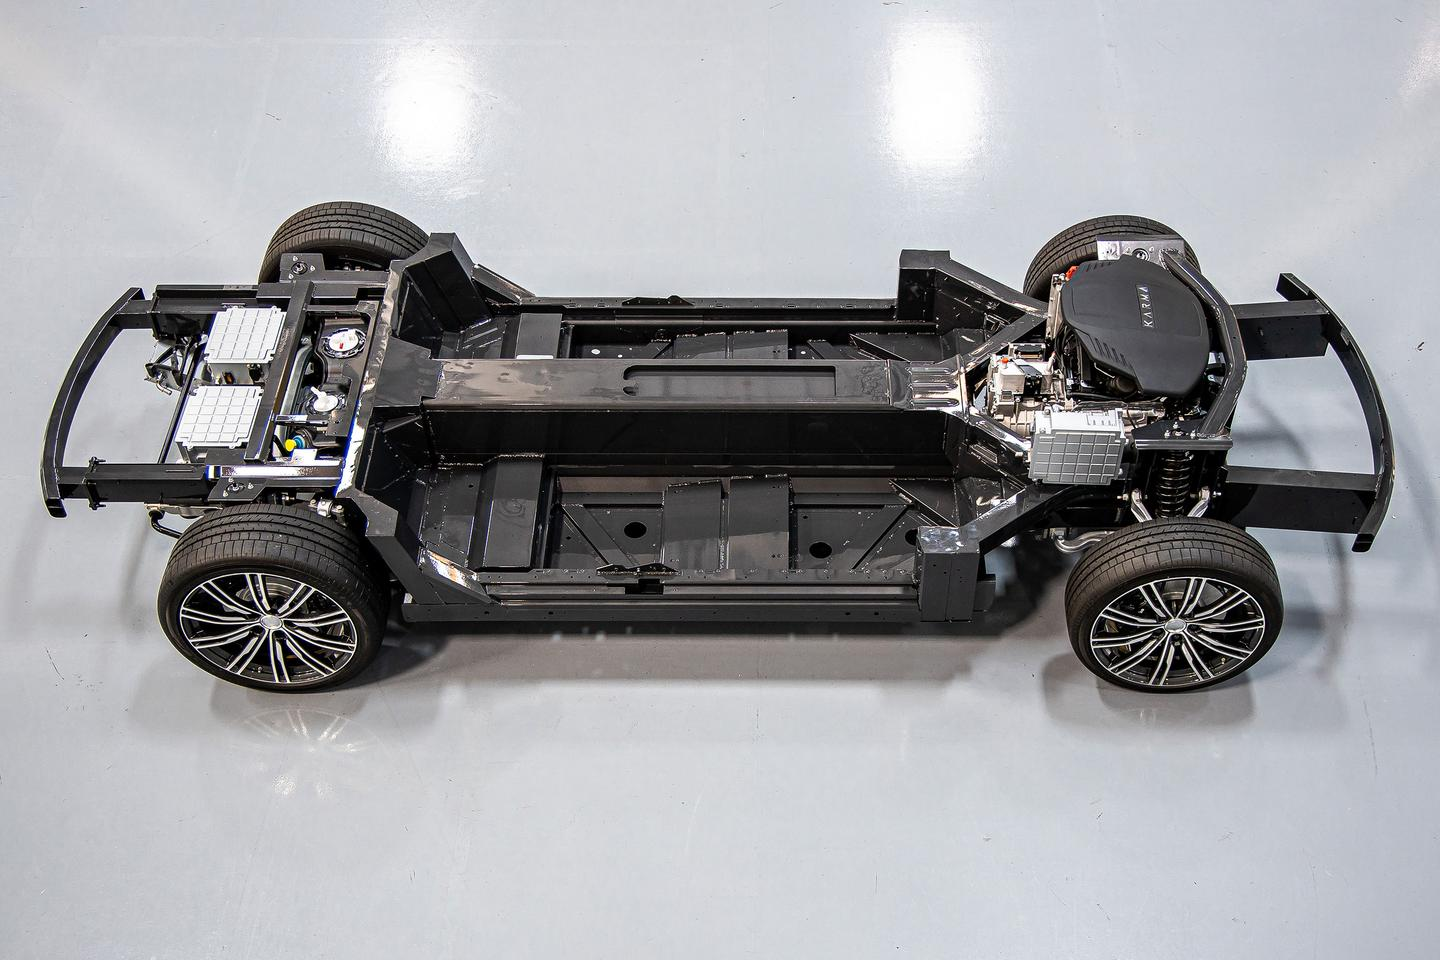 The E-Flex platform includes many motor, battery and hardware options